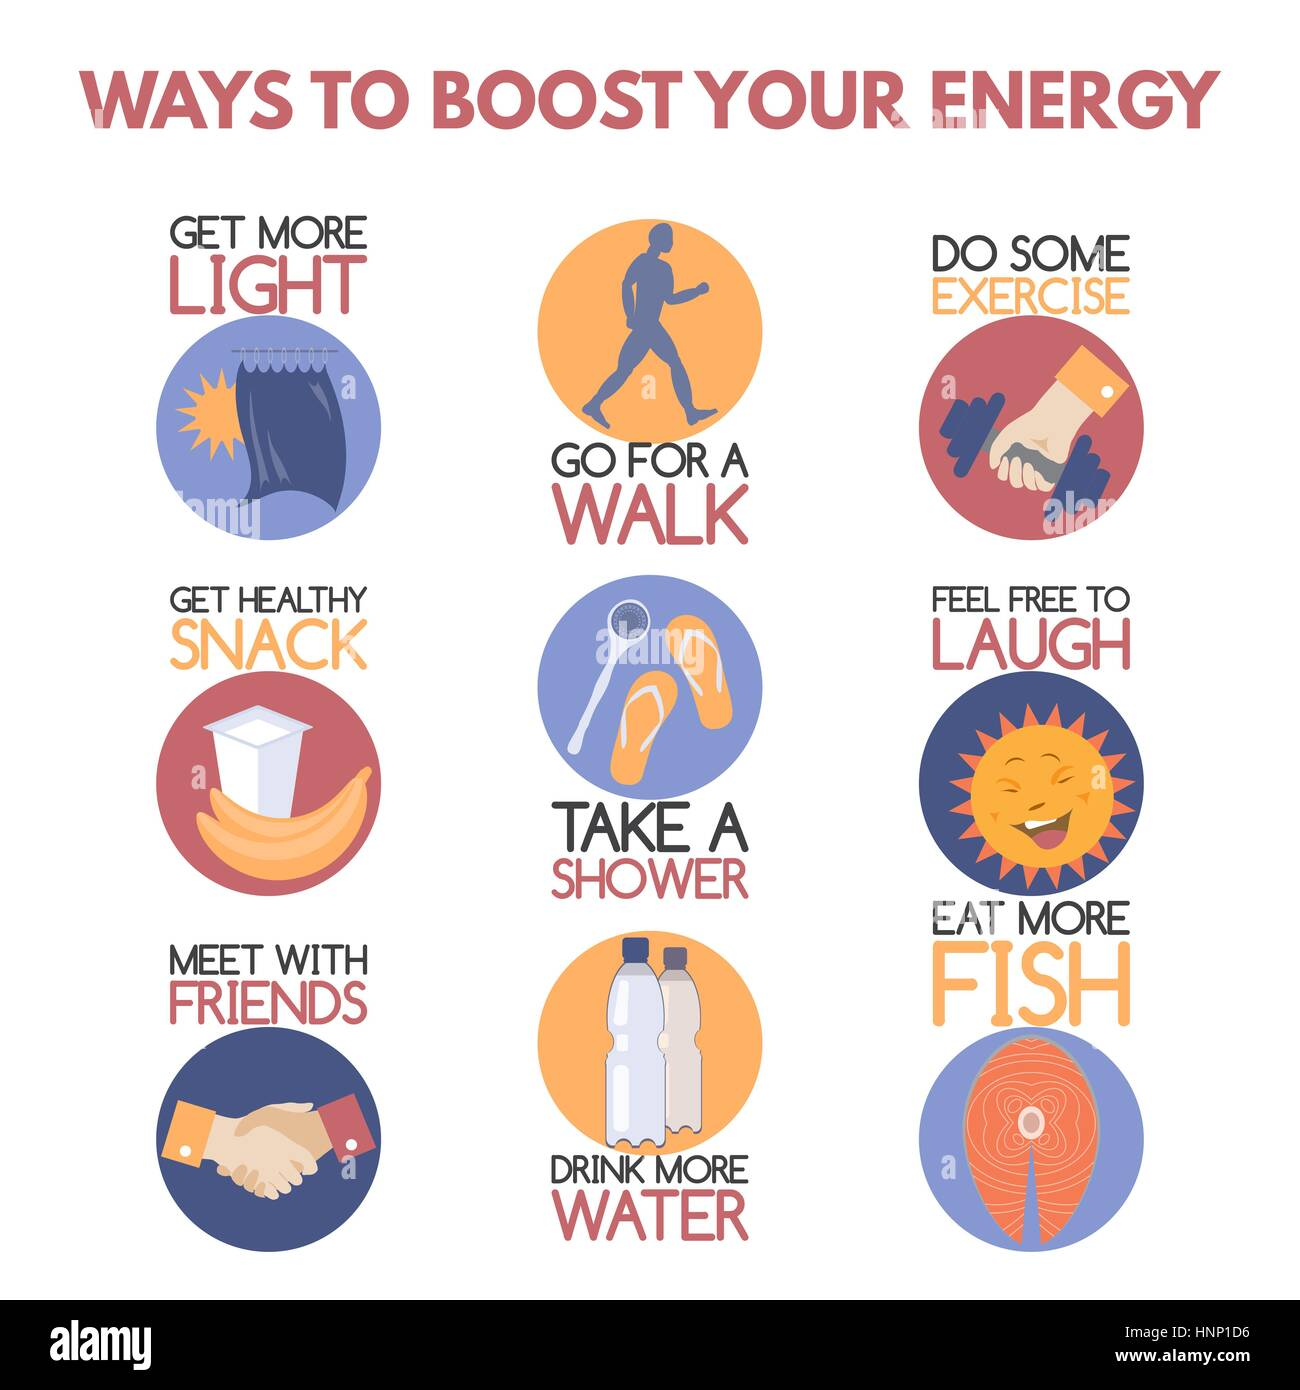 Modern flat style infographic on boosting your energy.  - Stock Image